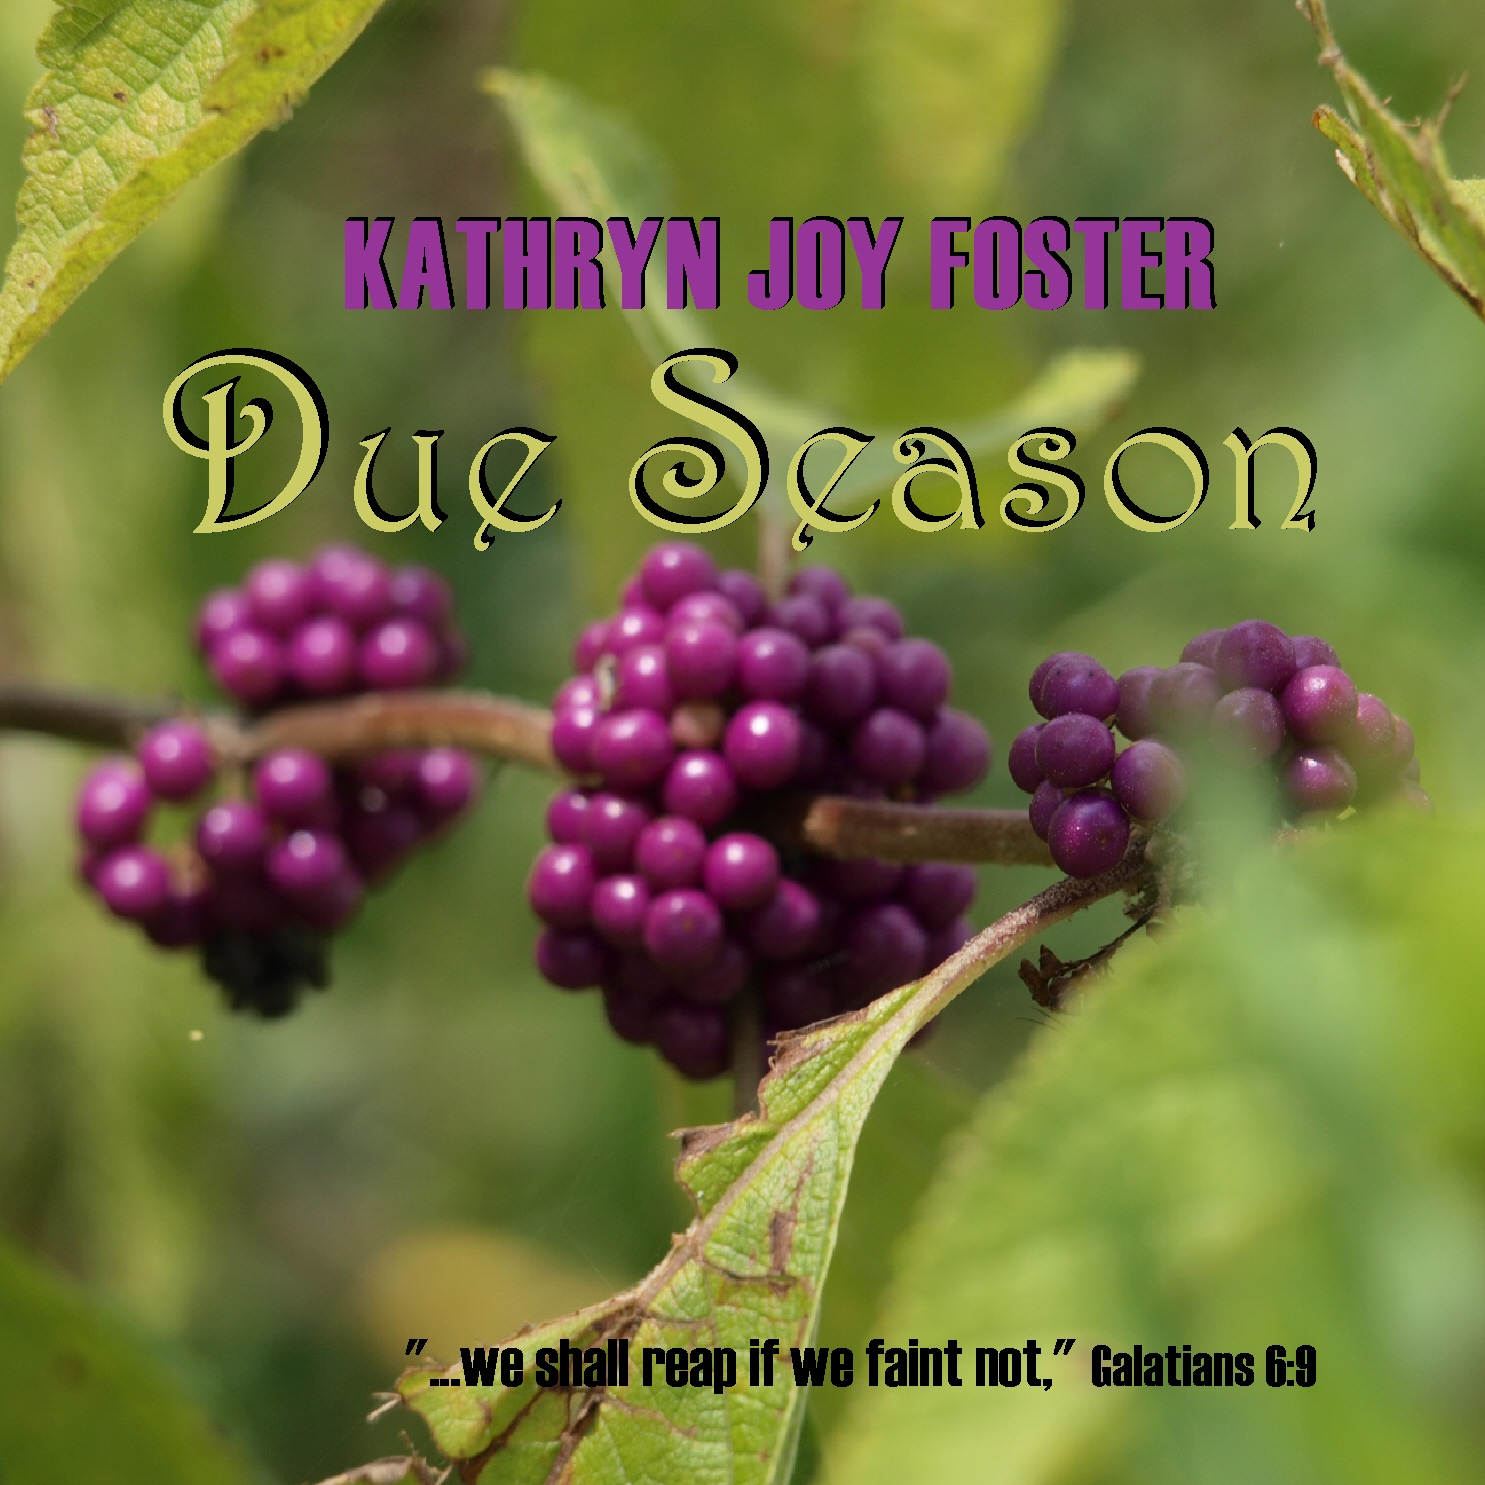 Due Season CD front